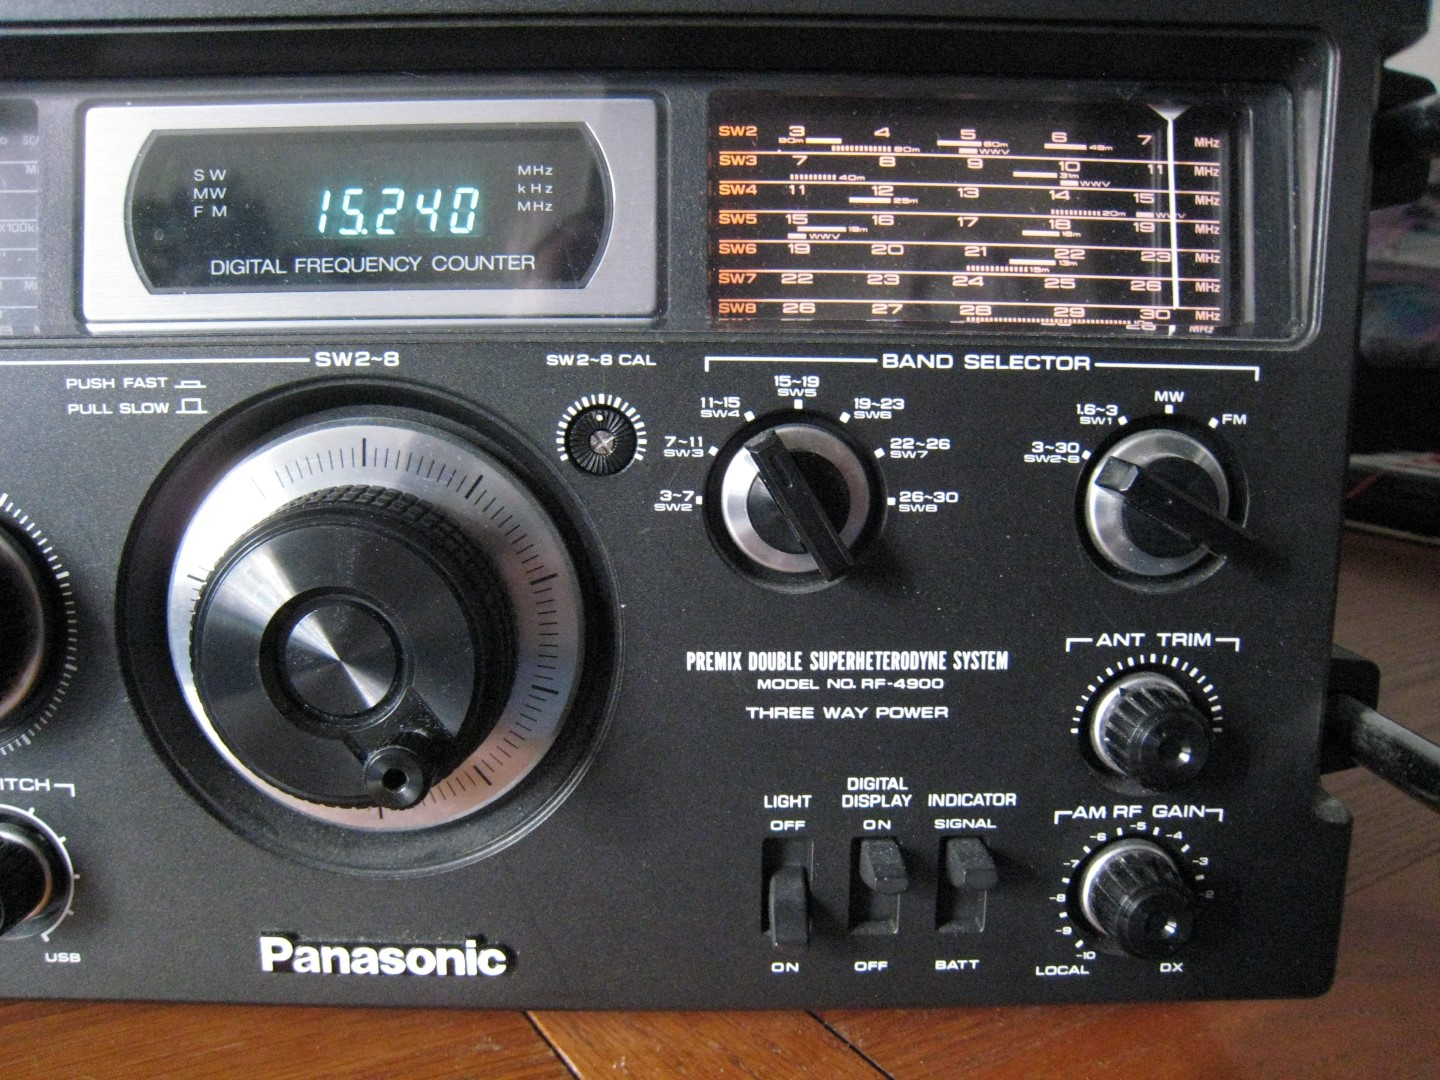 Panasonic RF-4900/DR49 | radiojayallen on panasonic portable multiband receiver, panasonic rf 5000, panasonic rf-4800,